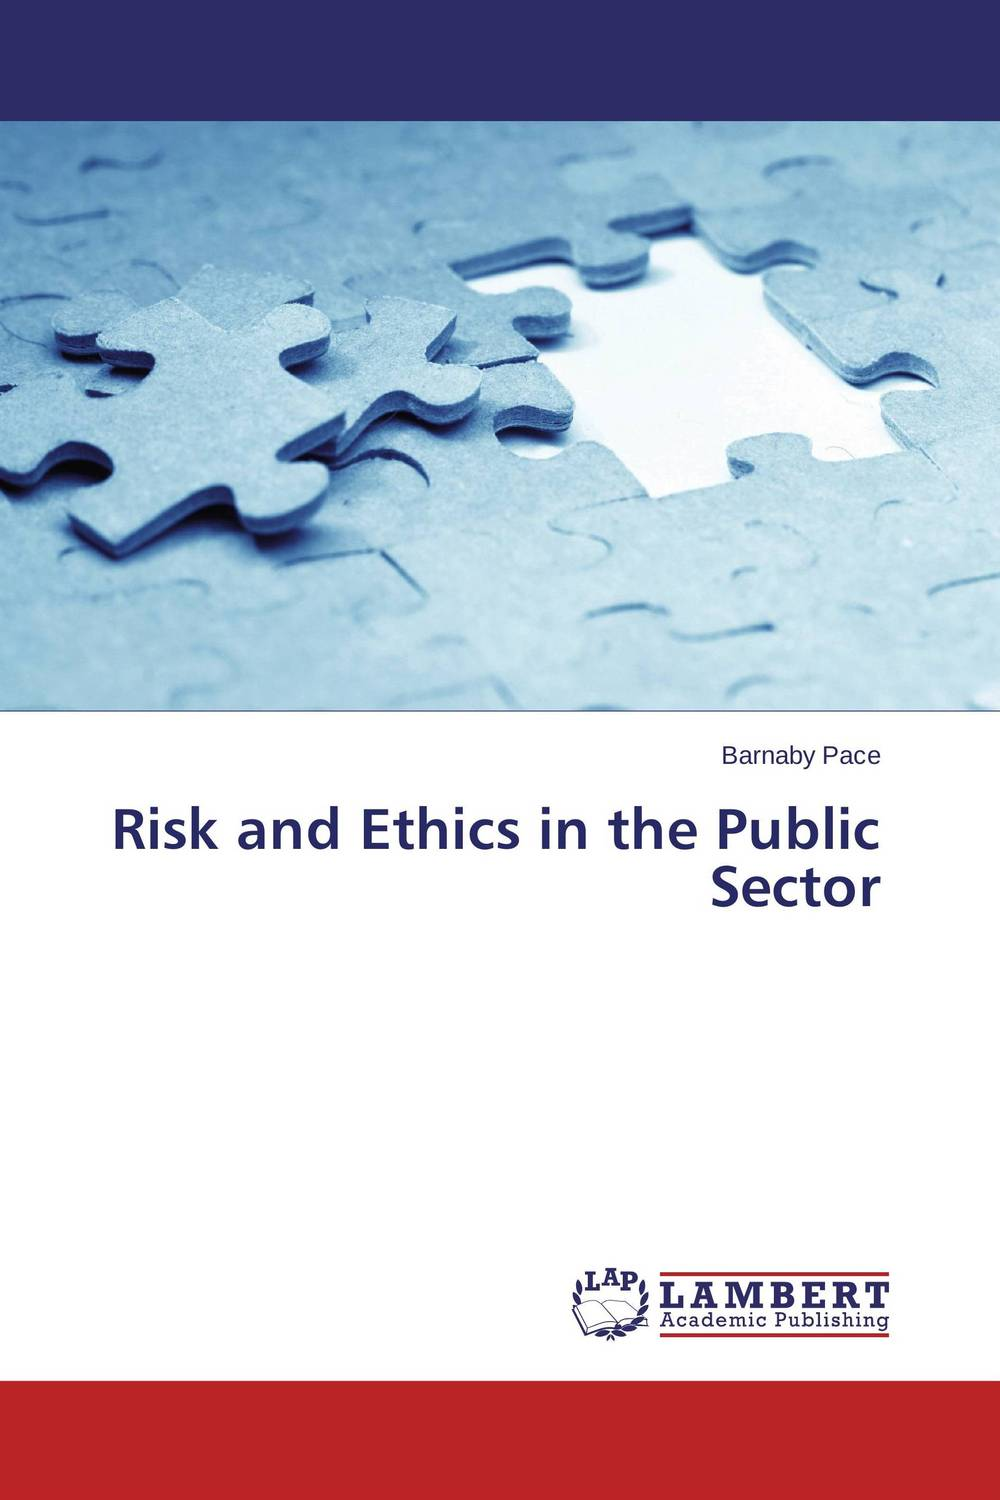 Risk and Ethics in the Public Sector